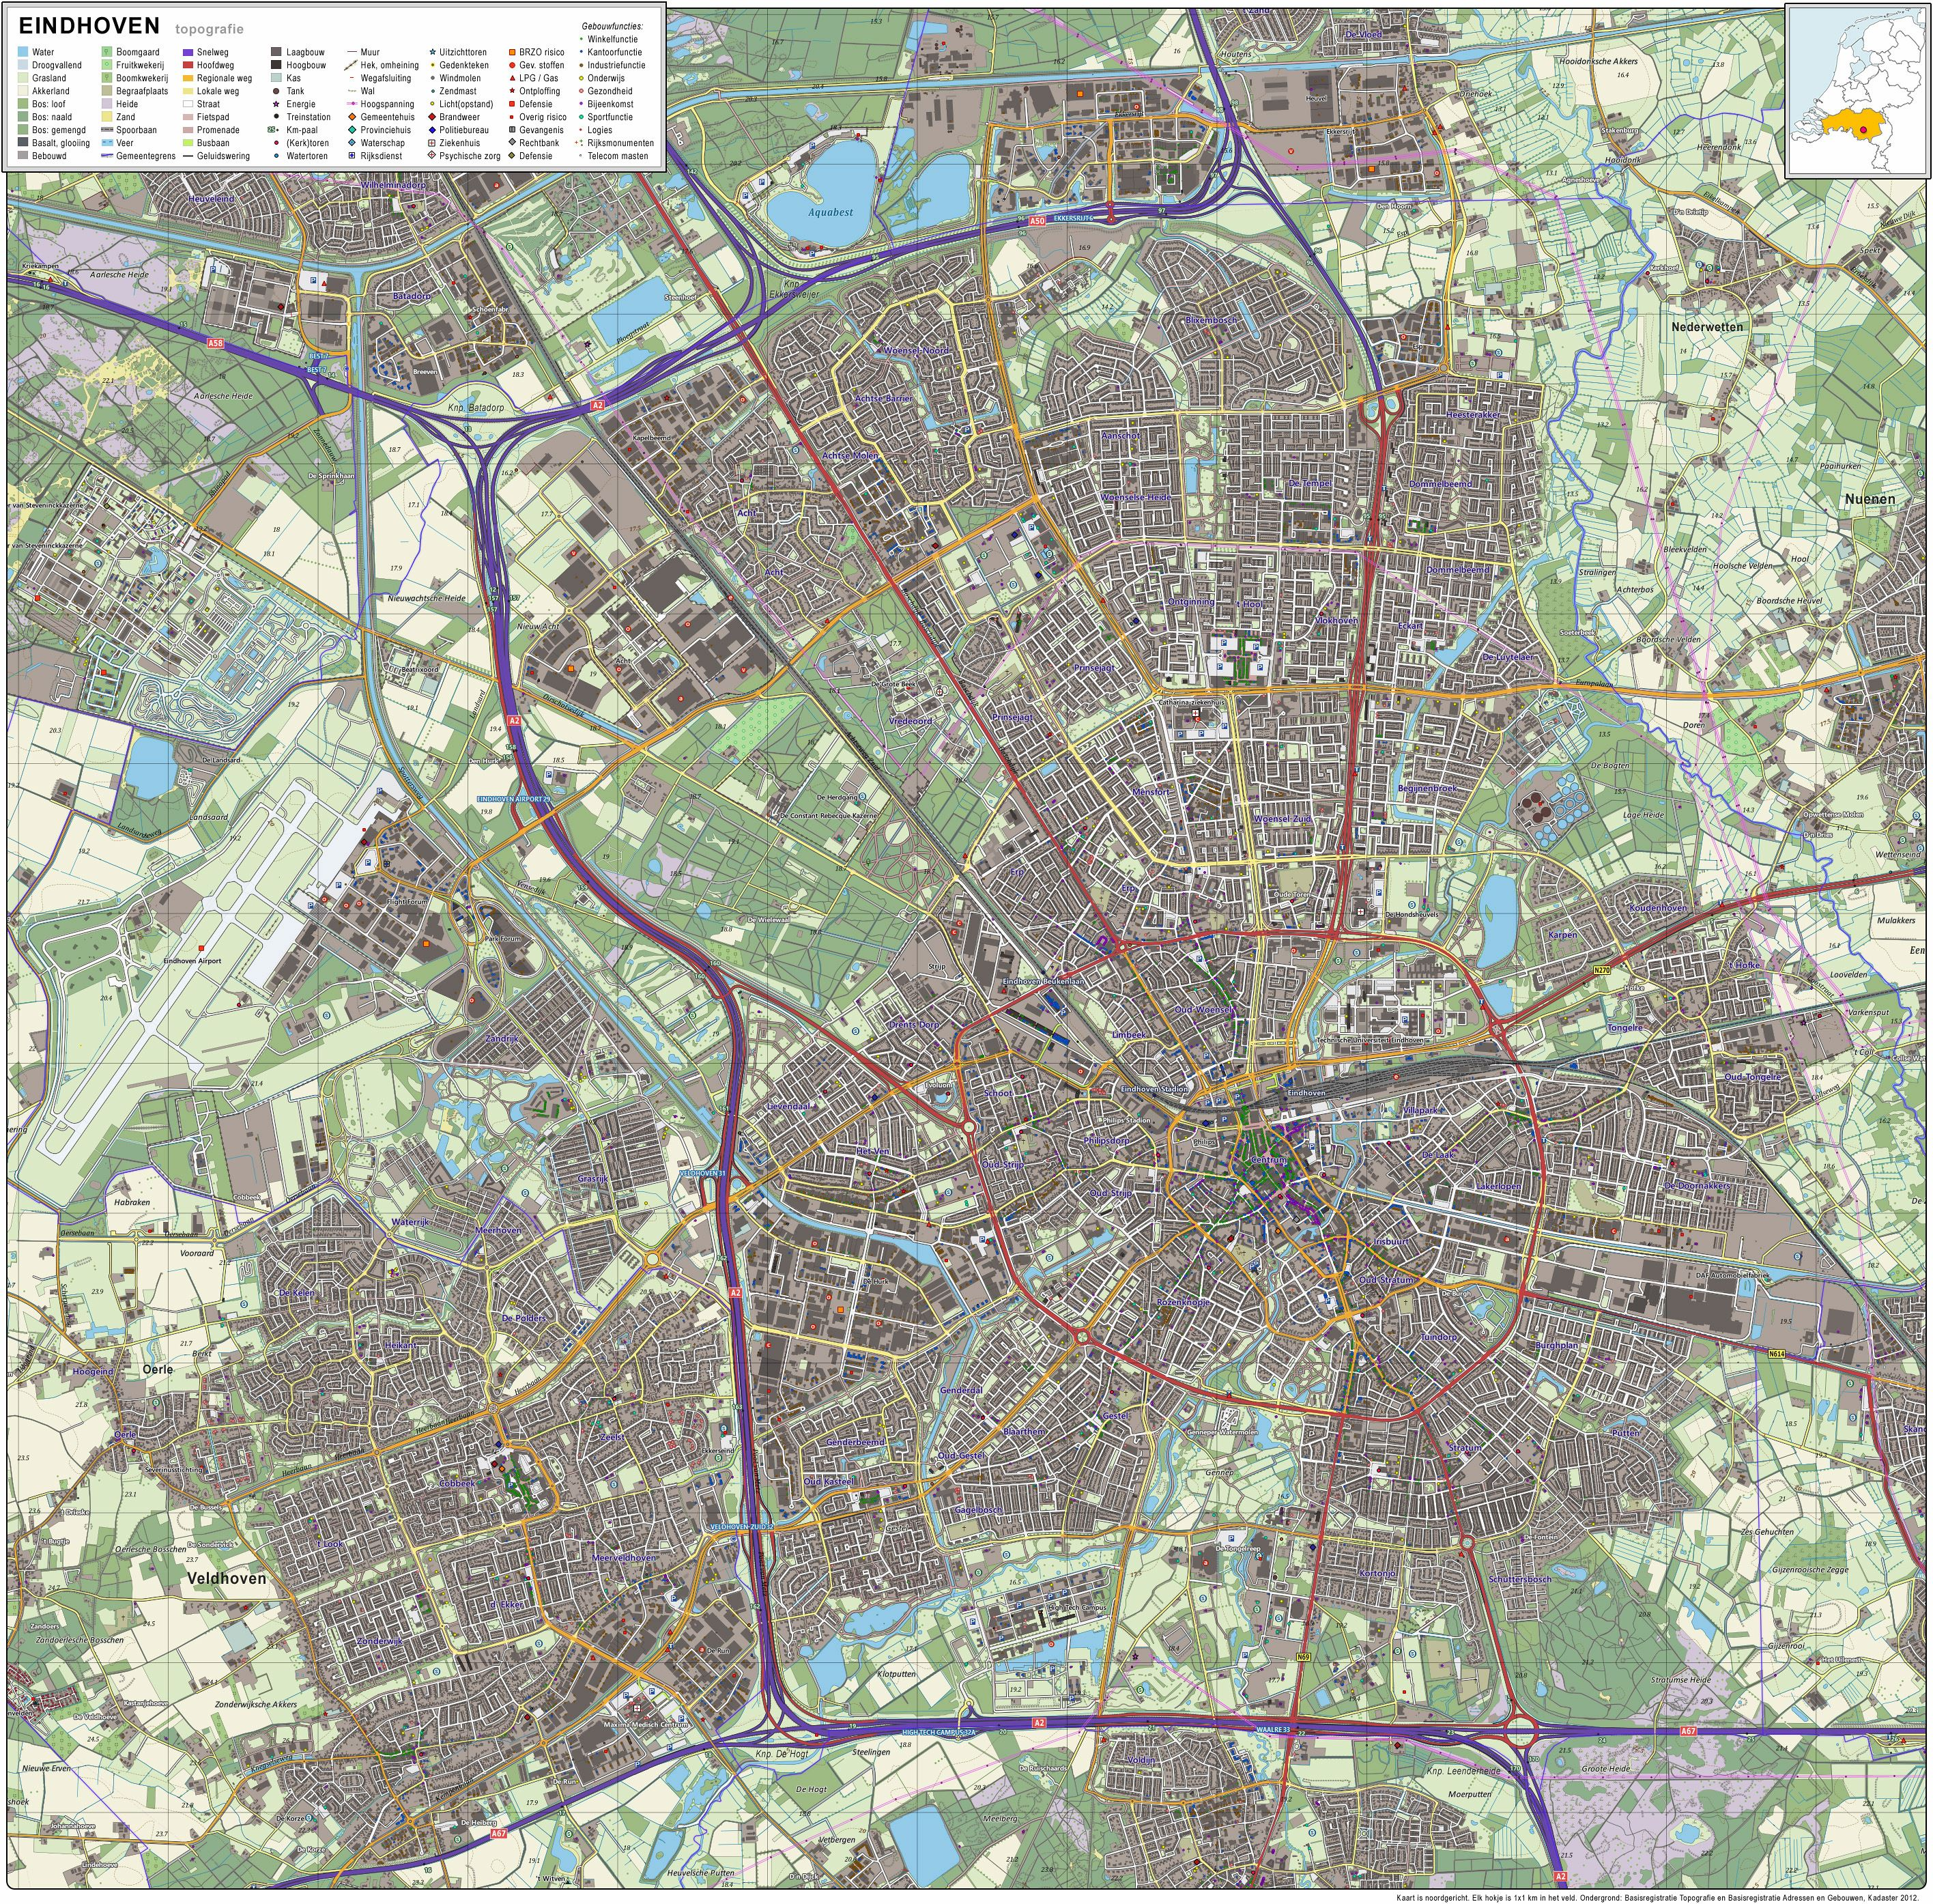 Large Eindhoven Maps for Free Download and Print | High ...